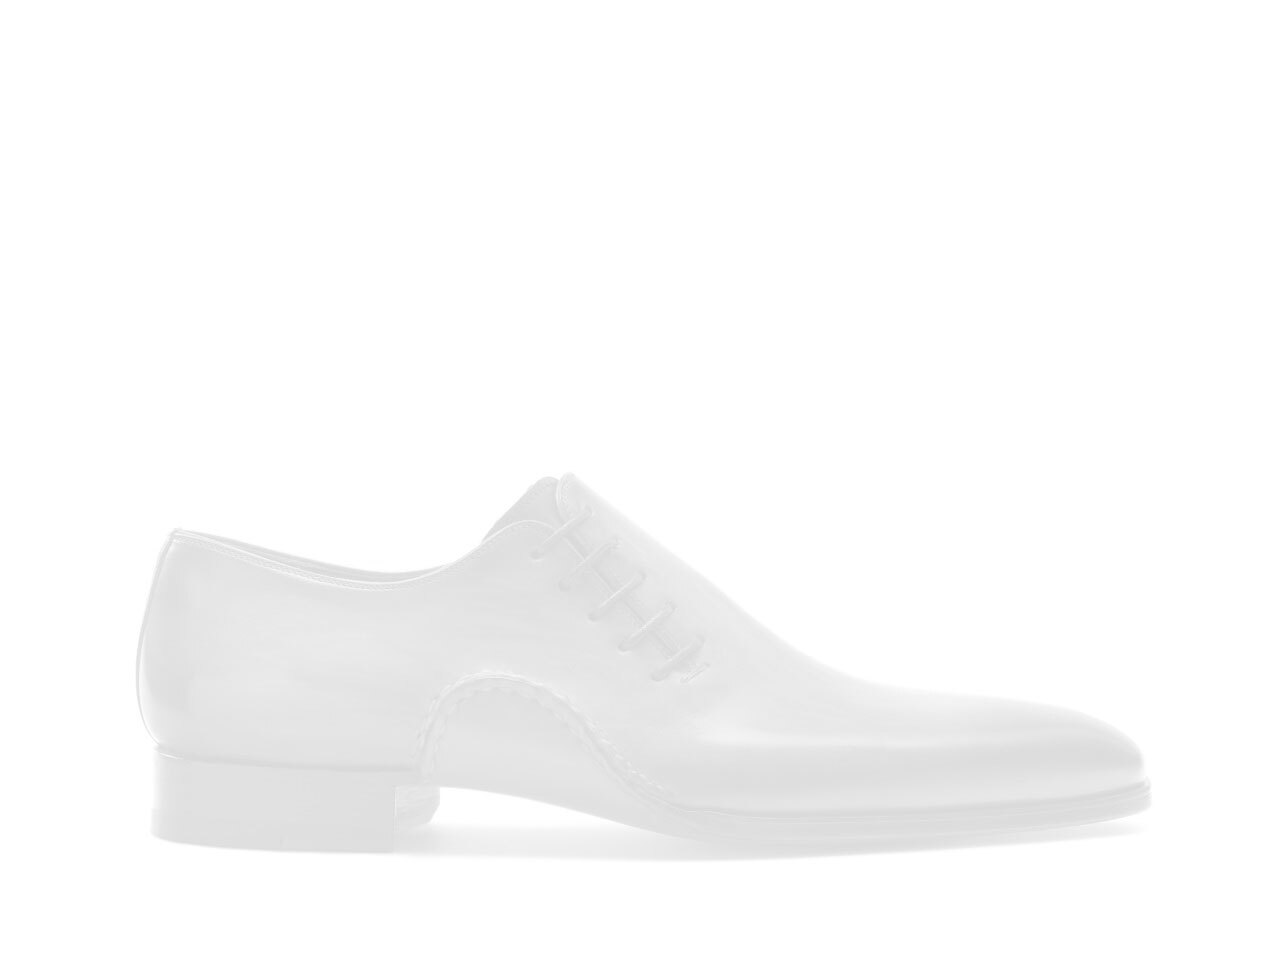 Pair of the Magnanni Castillo White and Navy Men's Sneakers